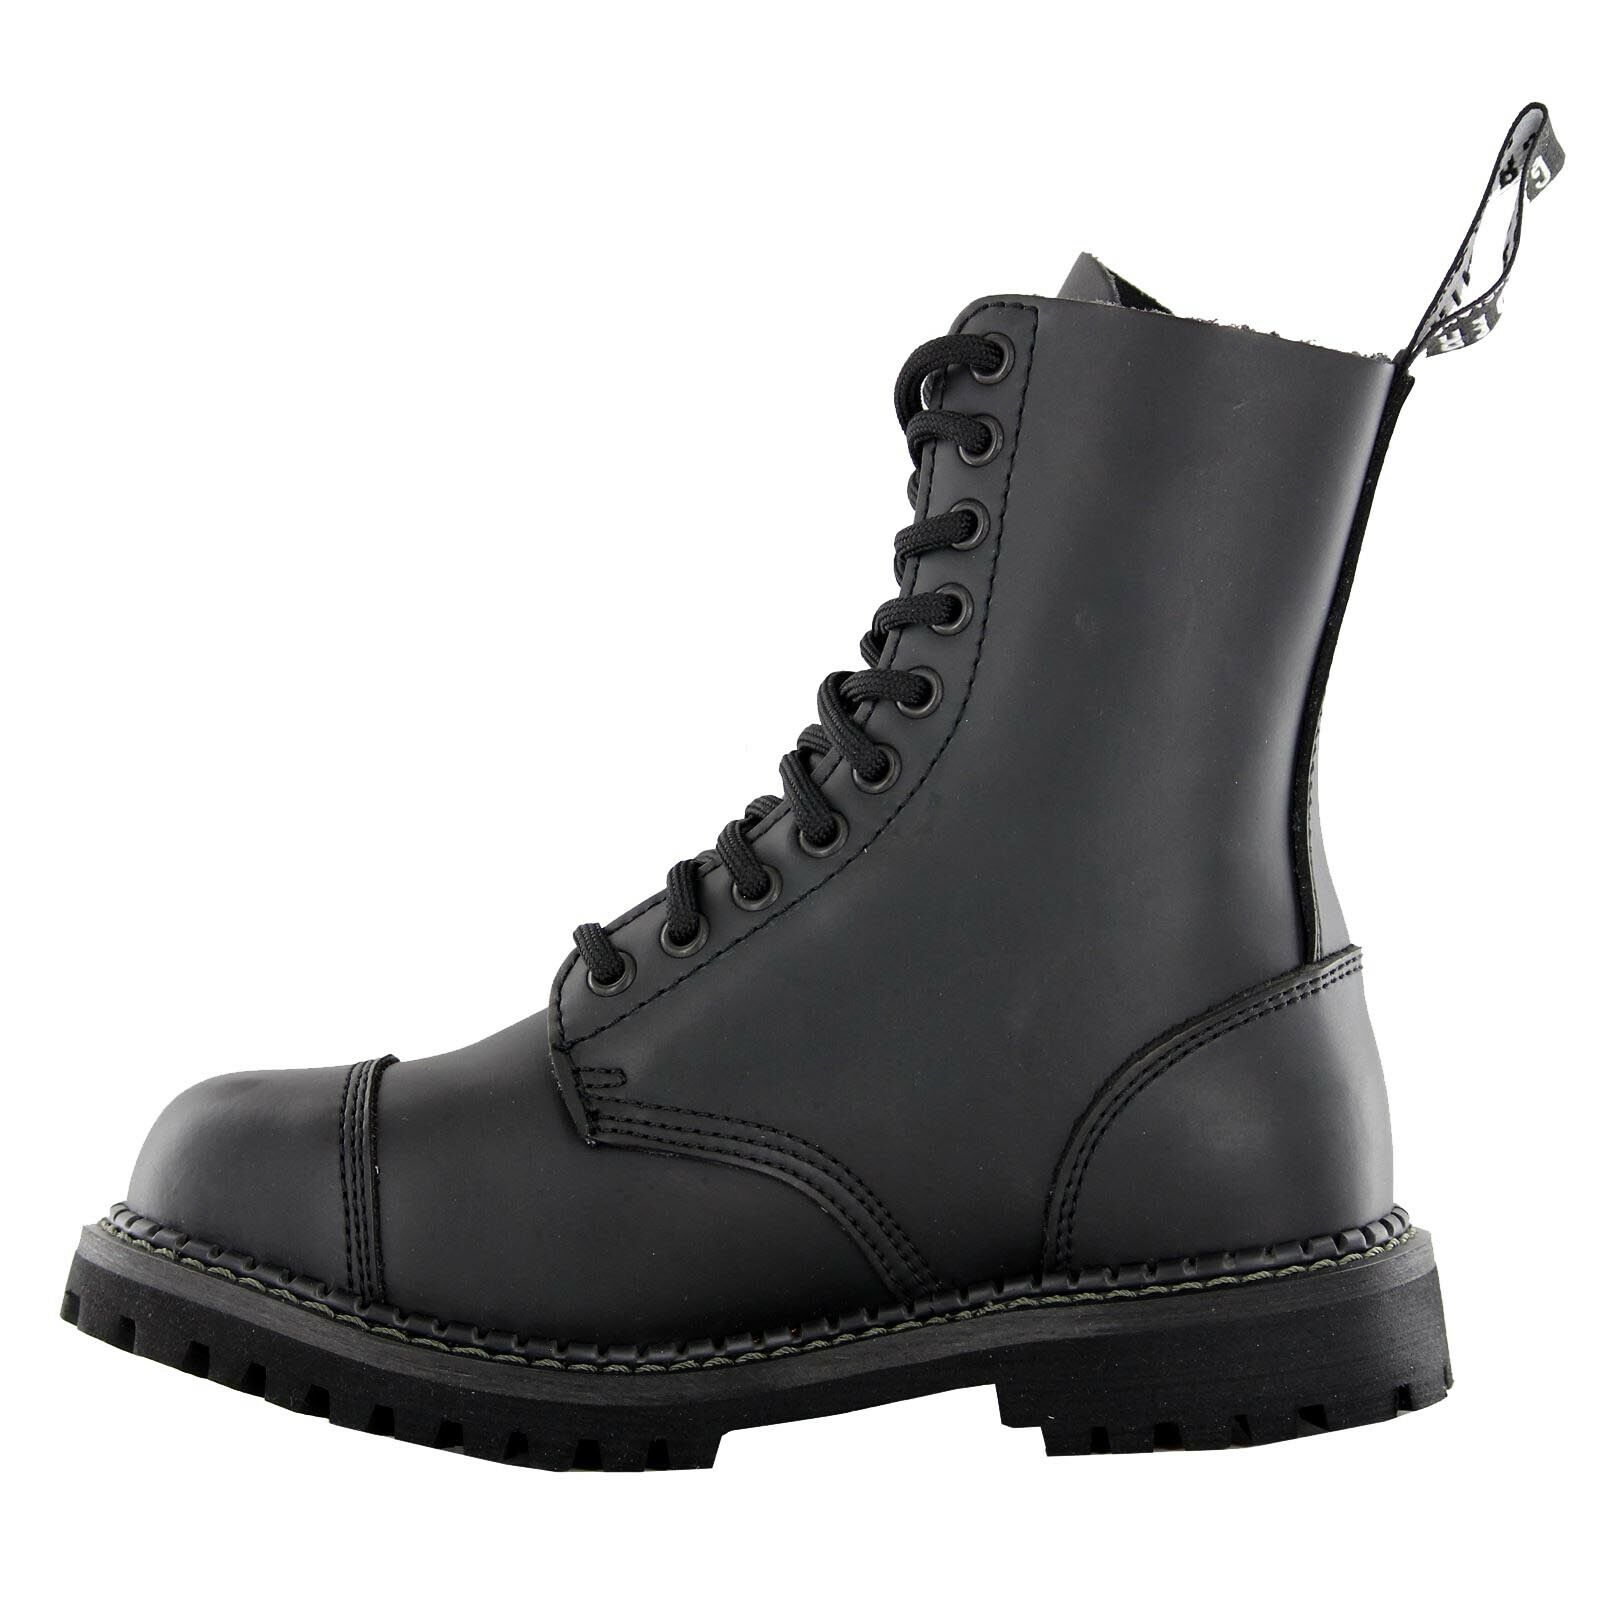 Hombres Mujers Grinders Stag Negro Lace Up New Leather Combat Uniform botas New Up ff1585